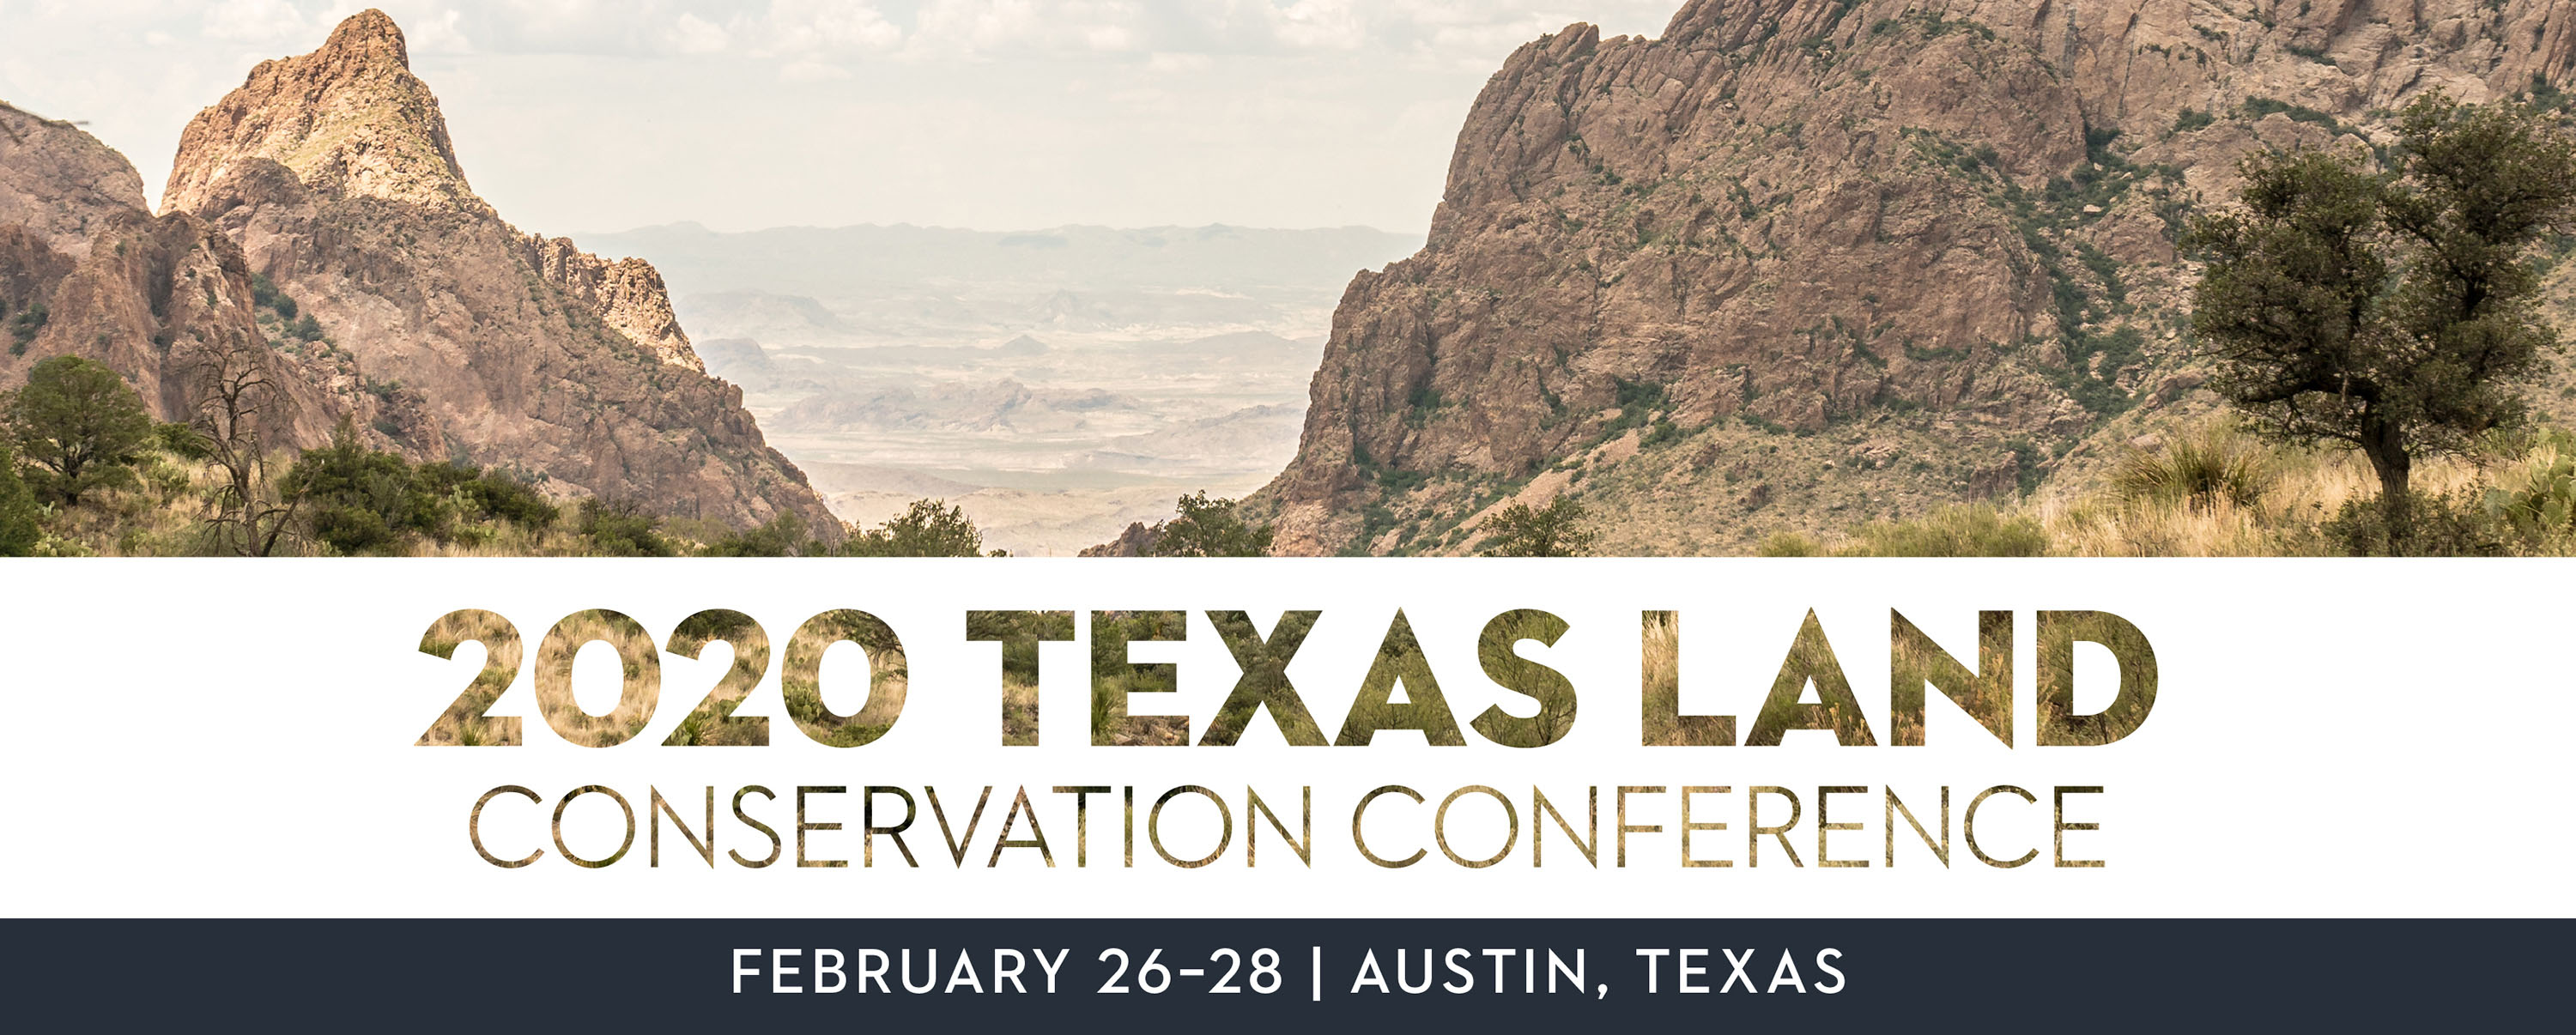 2020 Texas Land Conservation Conference